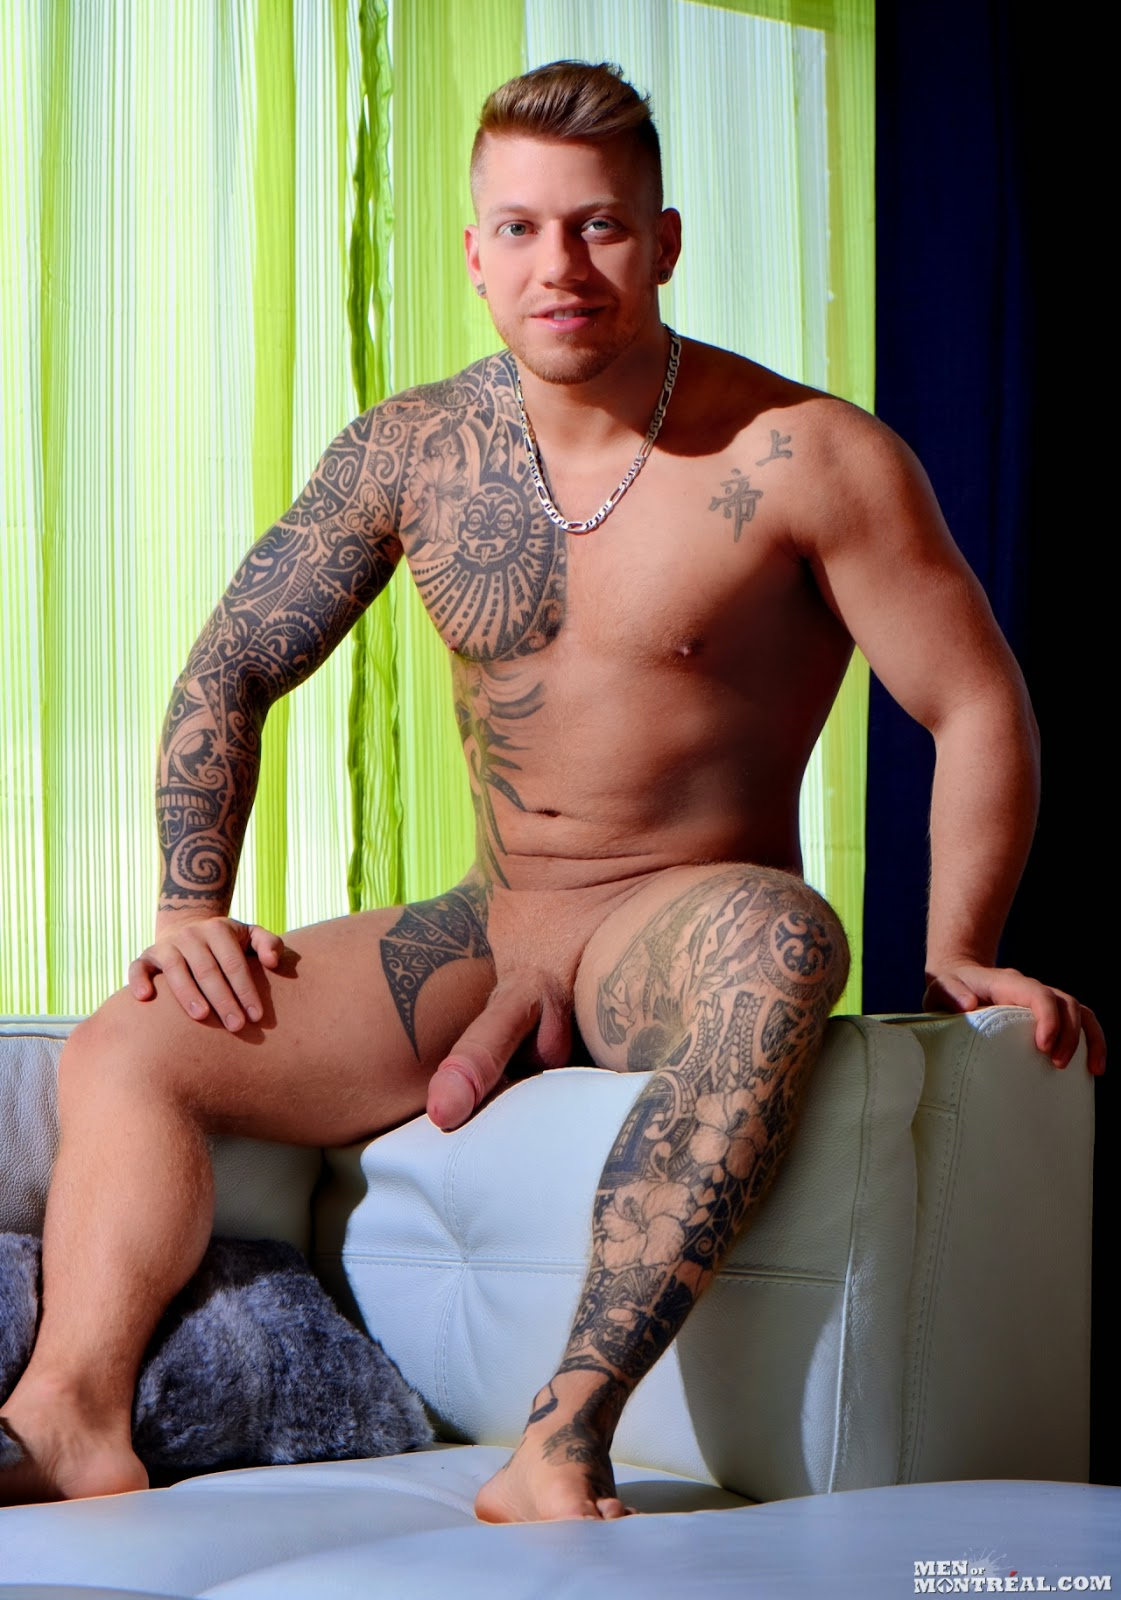 Buff straight naked men hot gay porn male 9